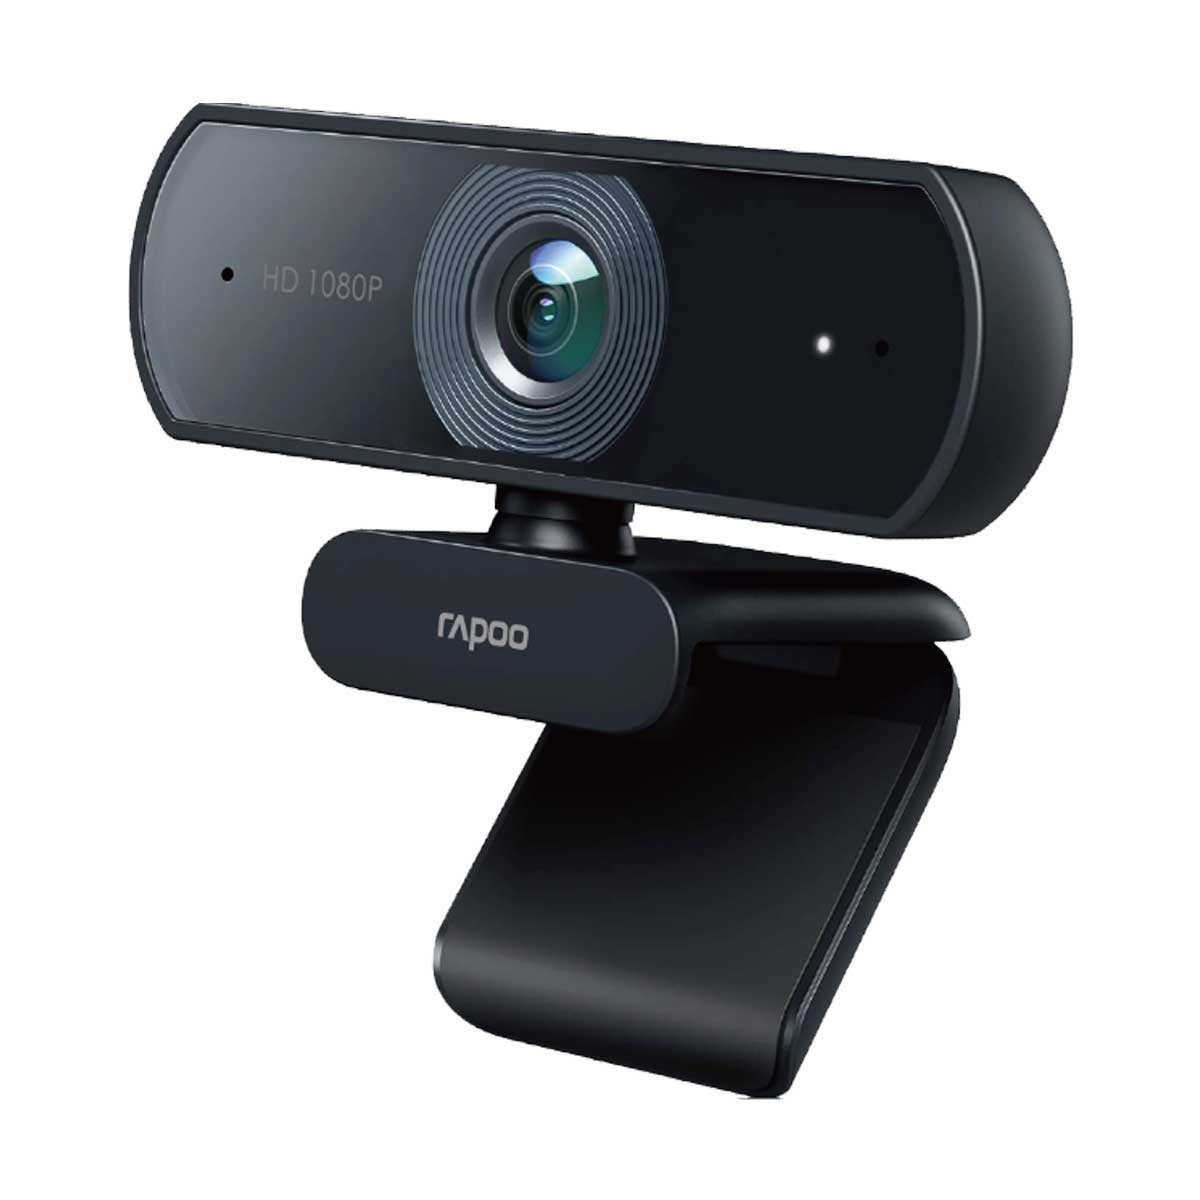 RAPOO C260 FULL HD Webcam